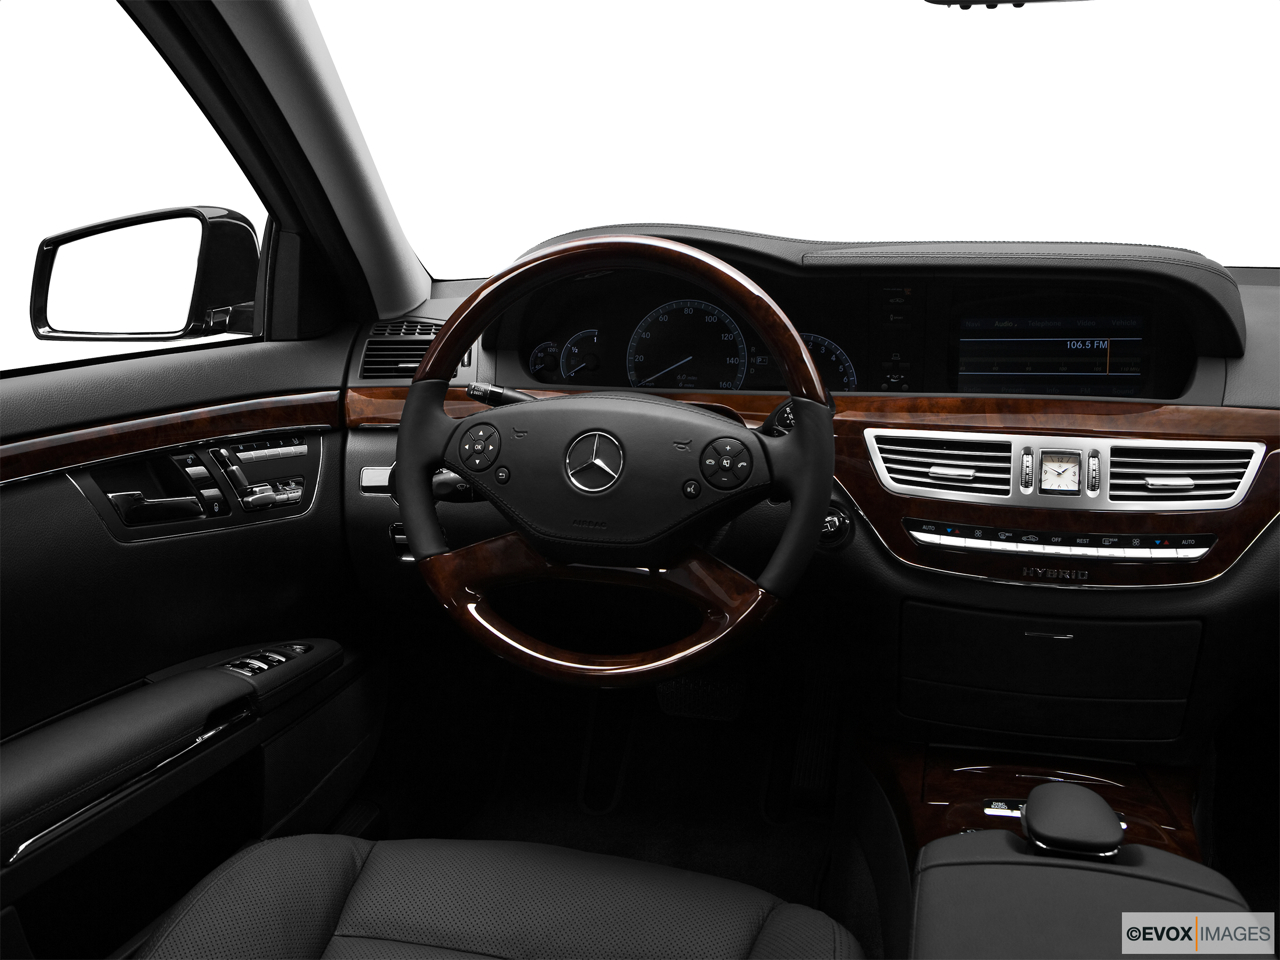 2010 Mercedes-Benz S-Class Hybrid S400 054 - no description